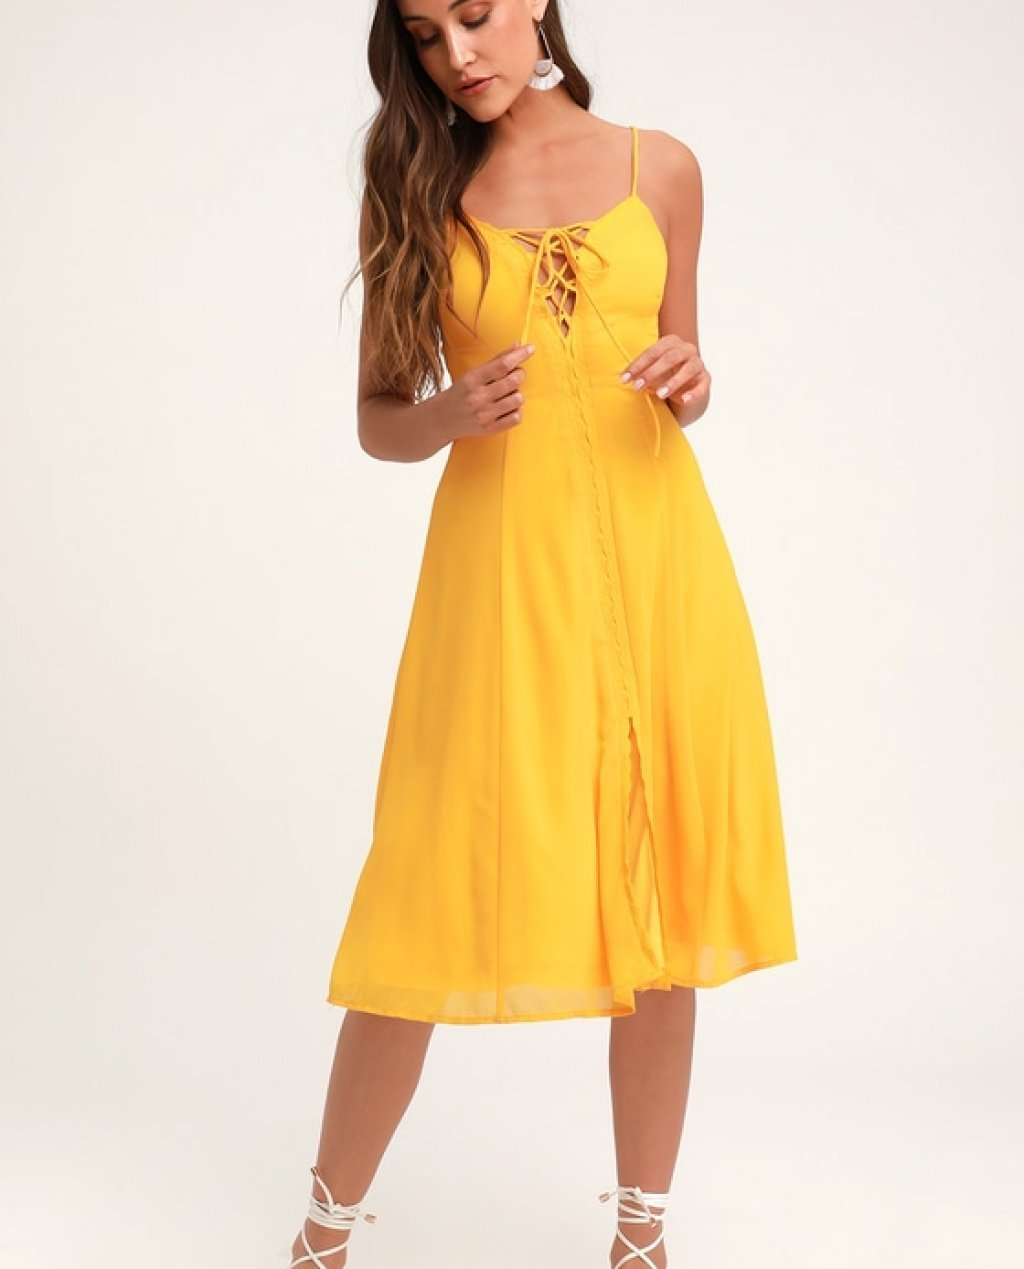 Dont Steal My Sunshine Golden Yellow Lace-Up Midi Dress